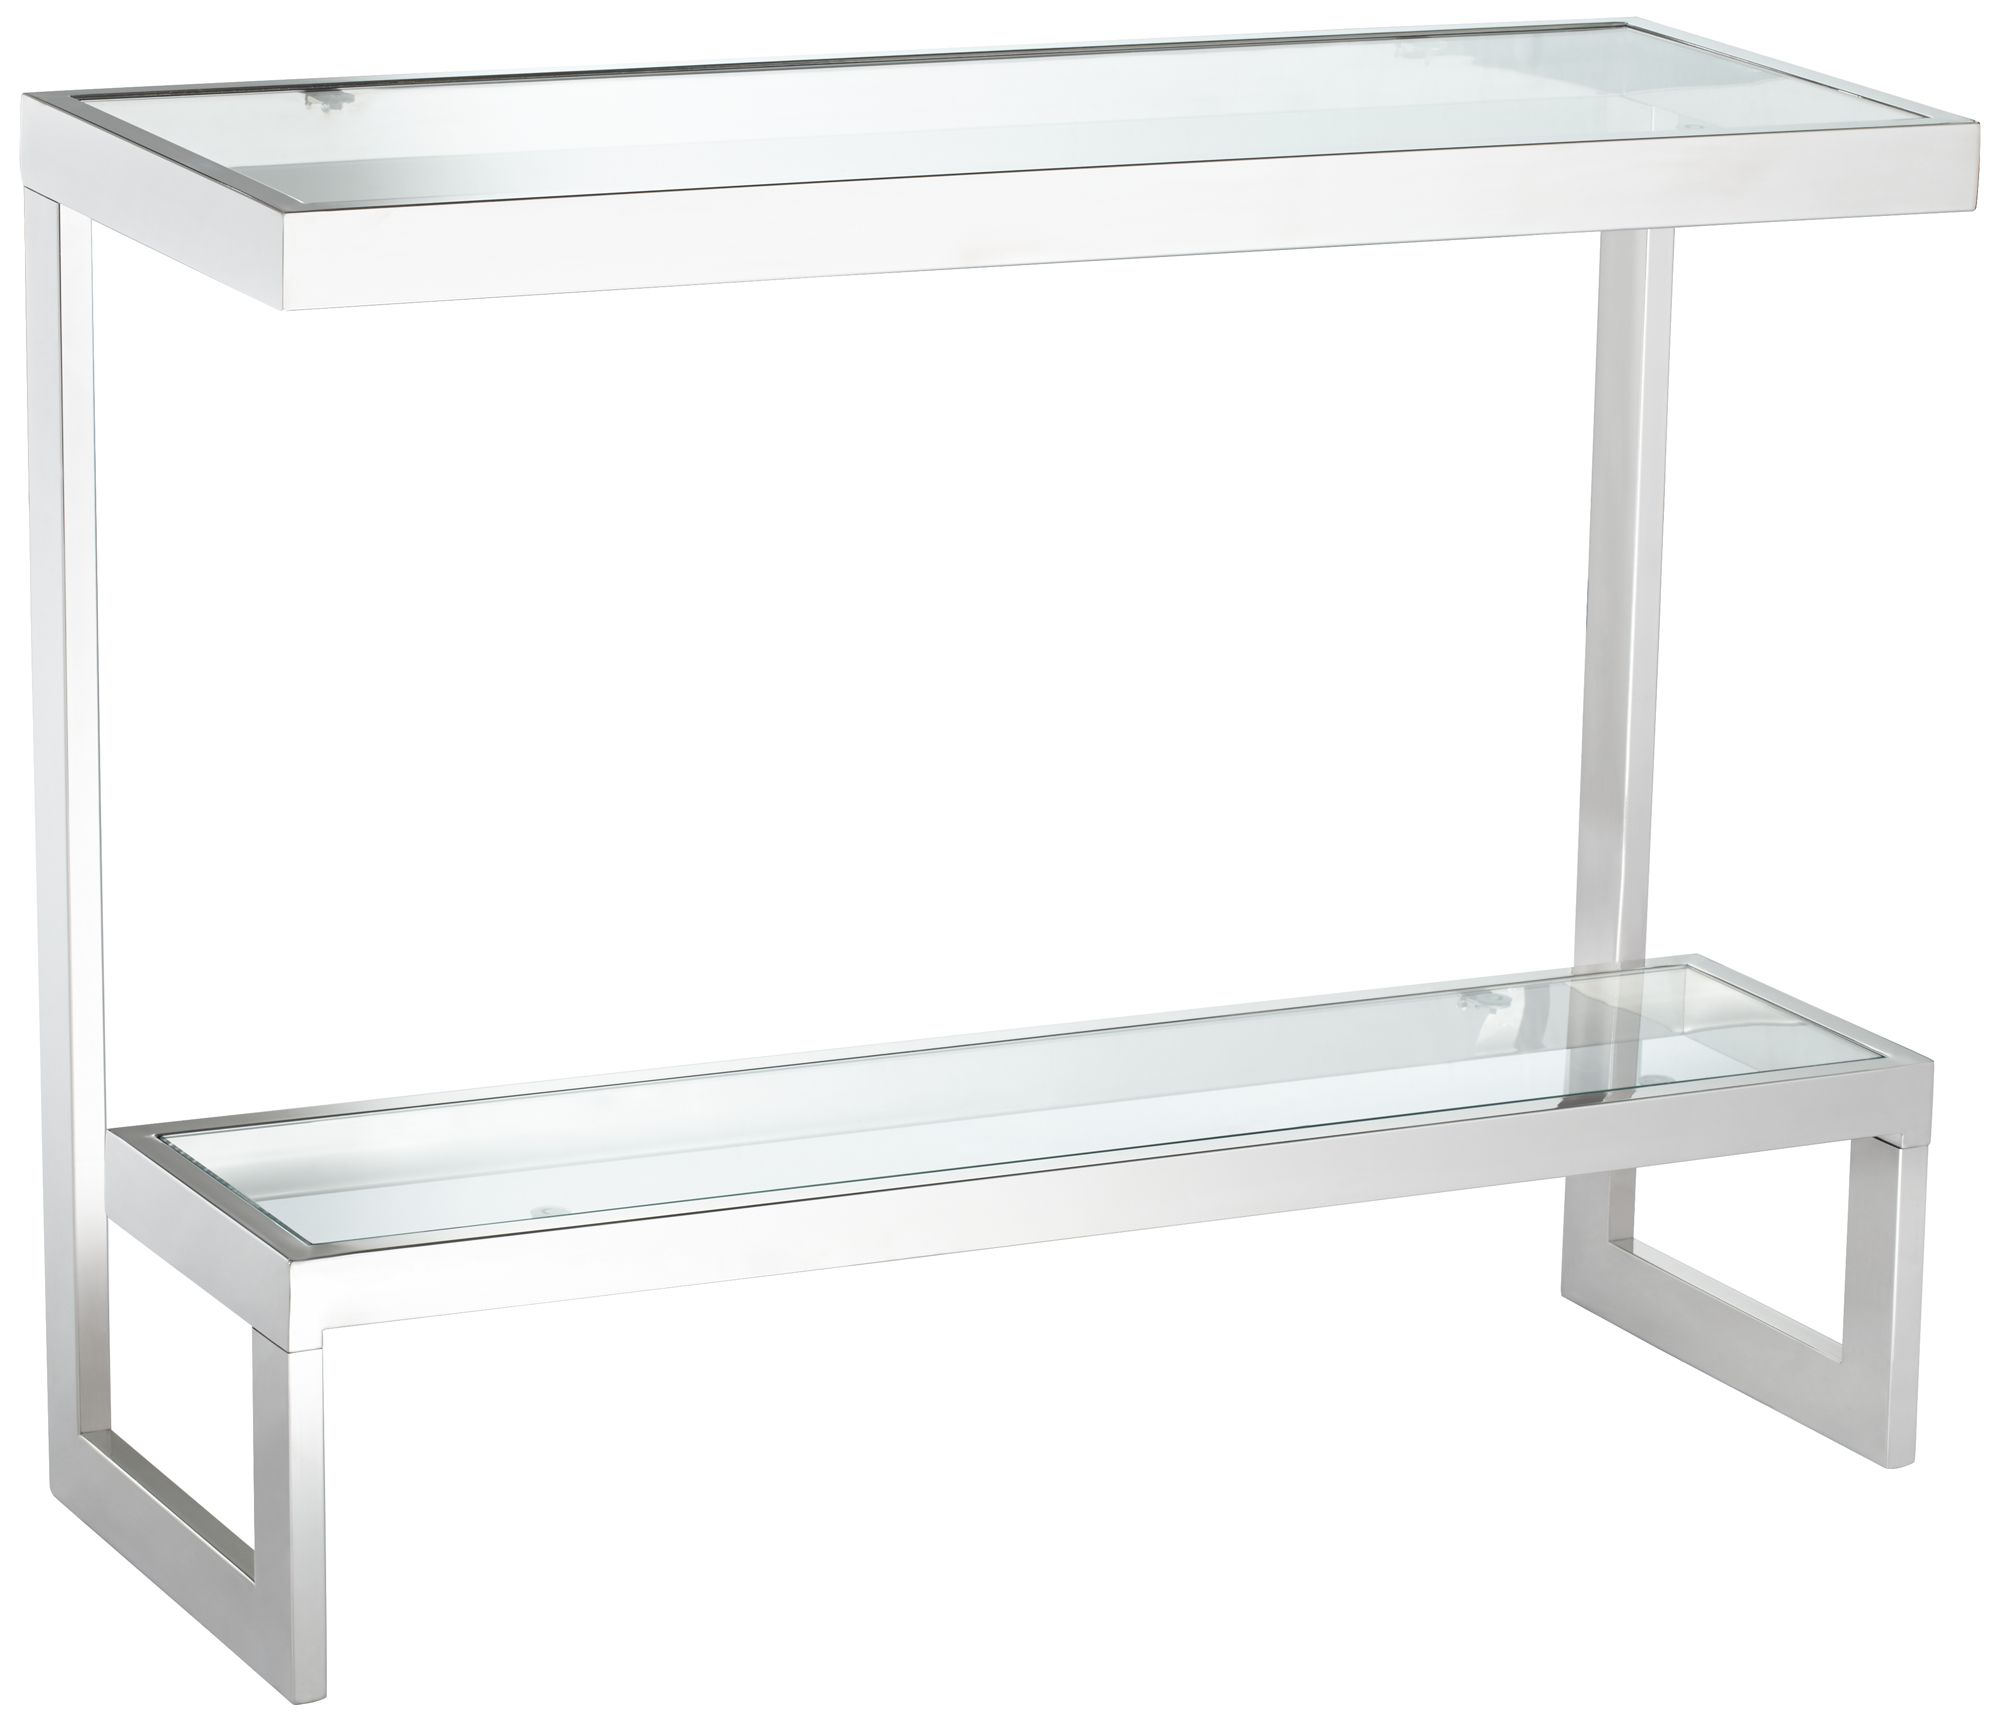 Rico Polished Stainless Steel 1 Shelf Console Table